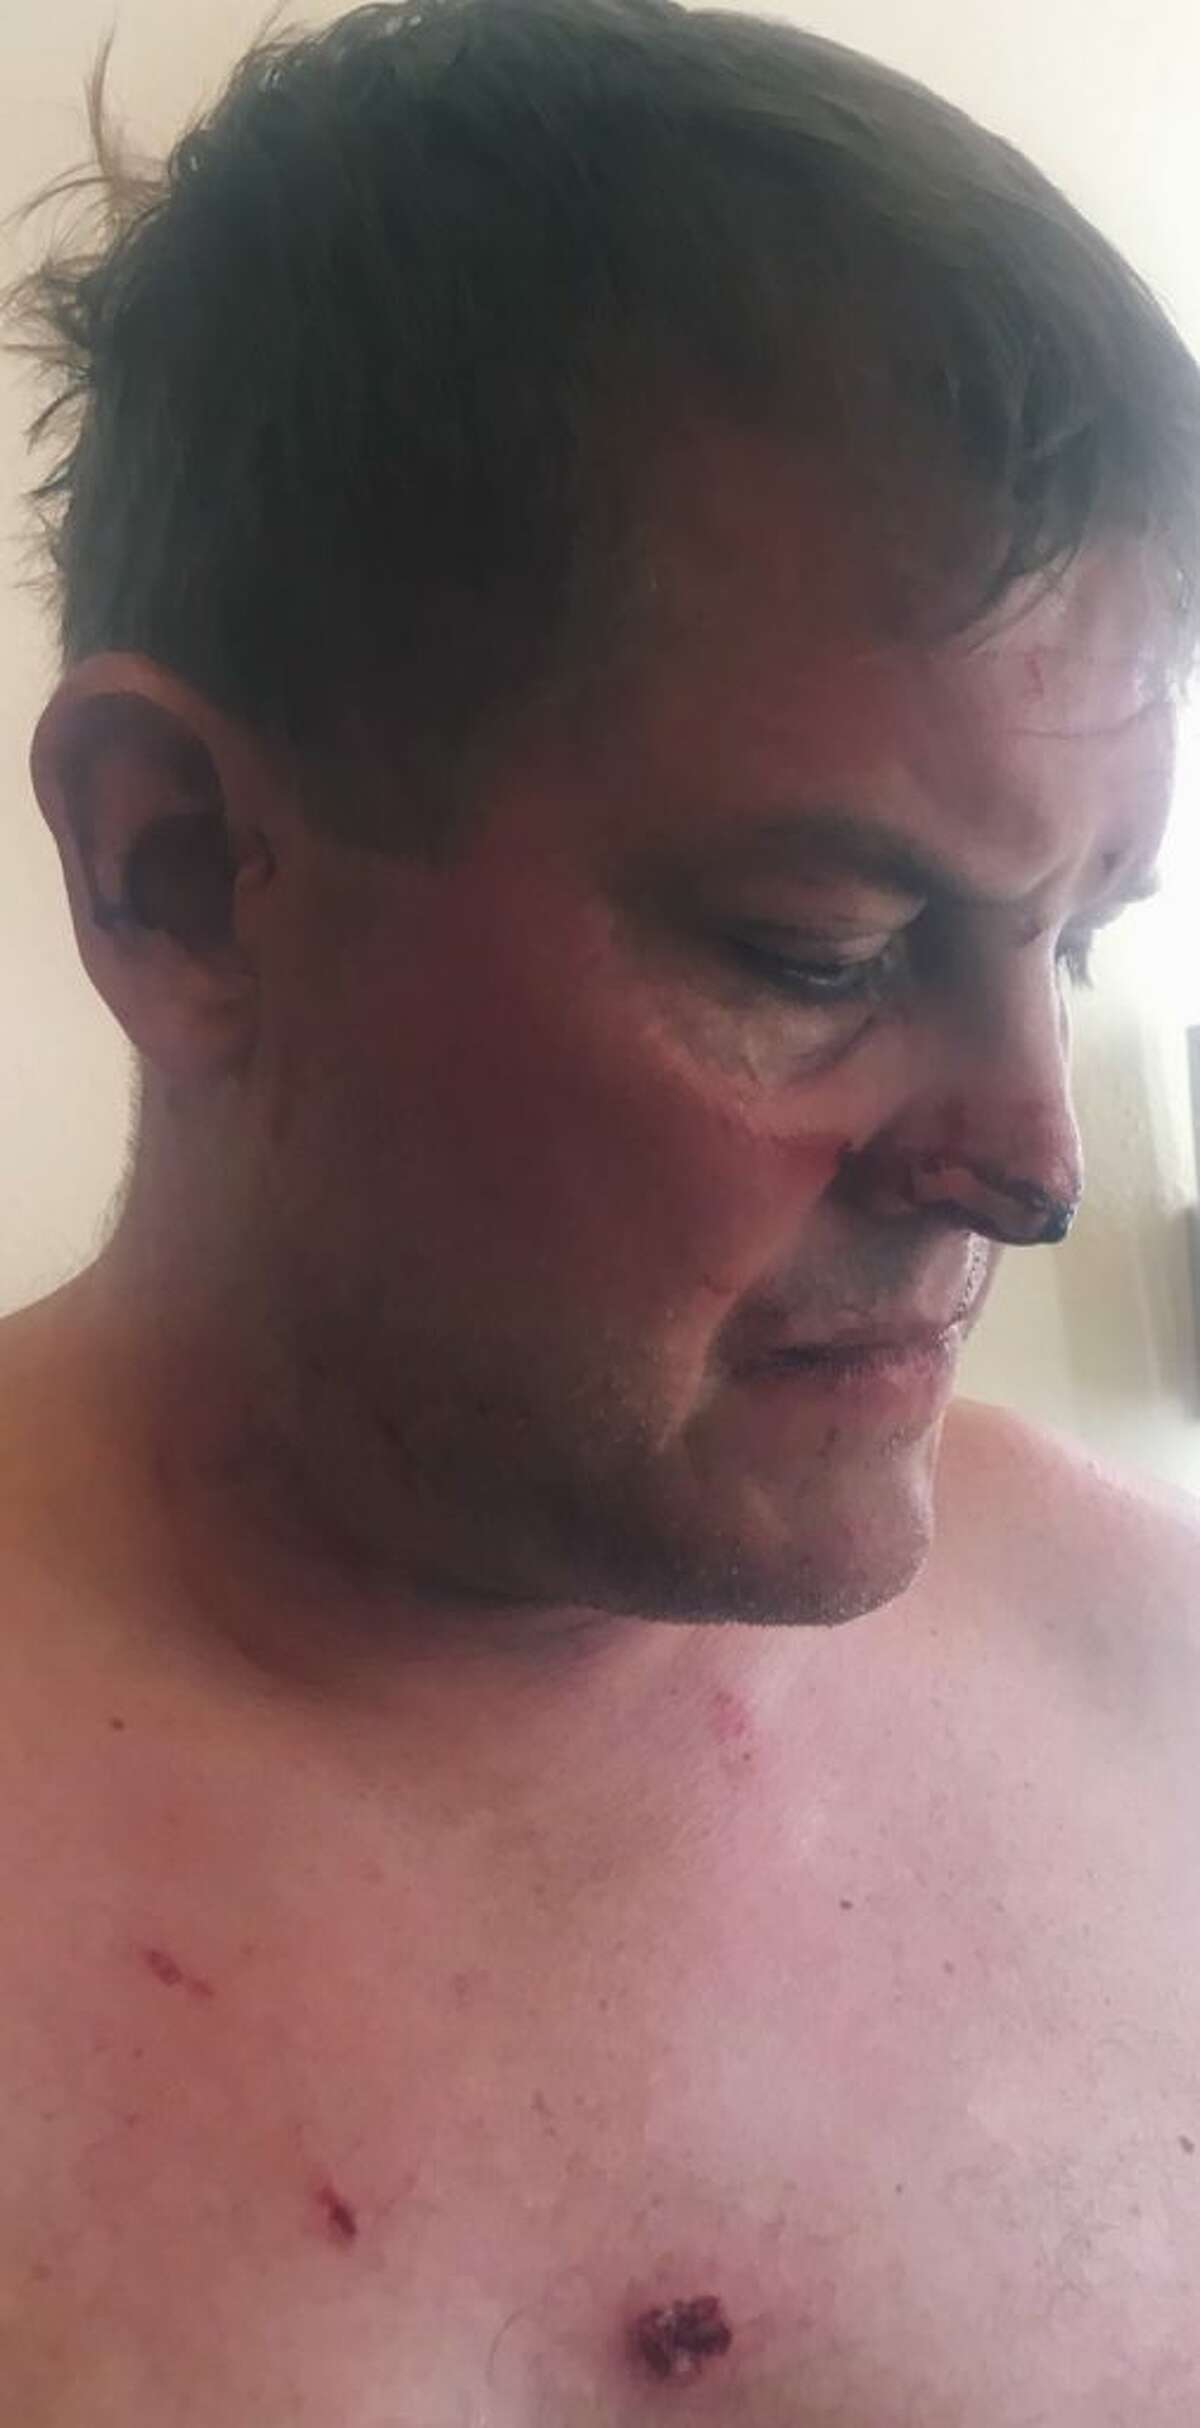 Scott Hapgood's injuries, photo courtesy the Hapgood family